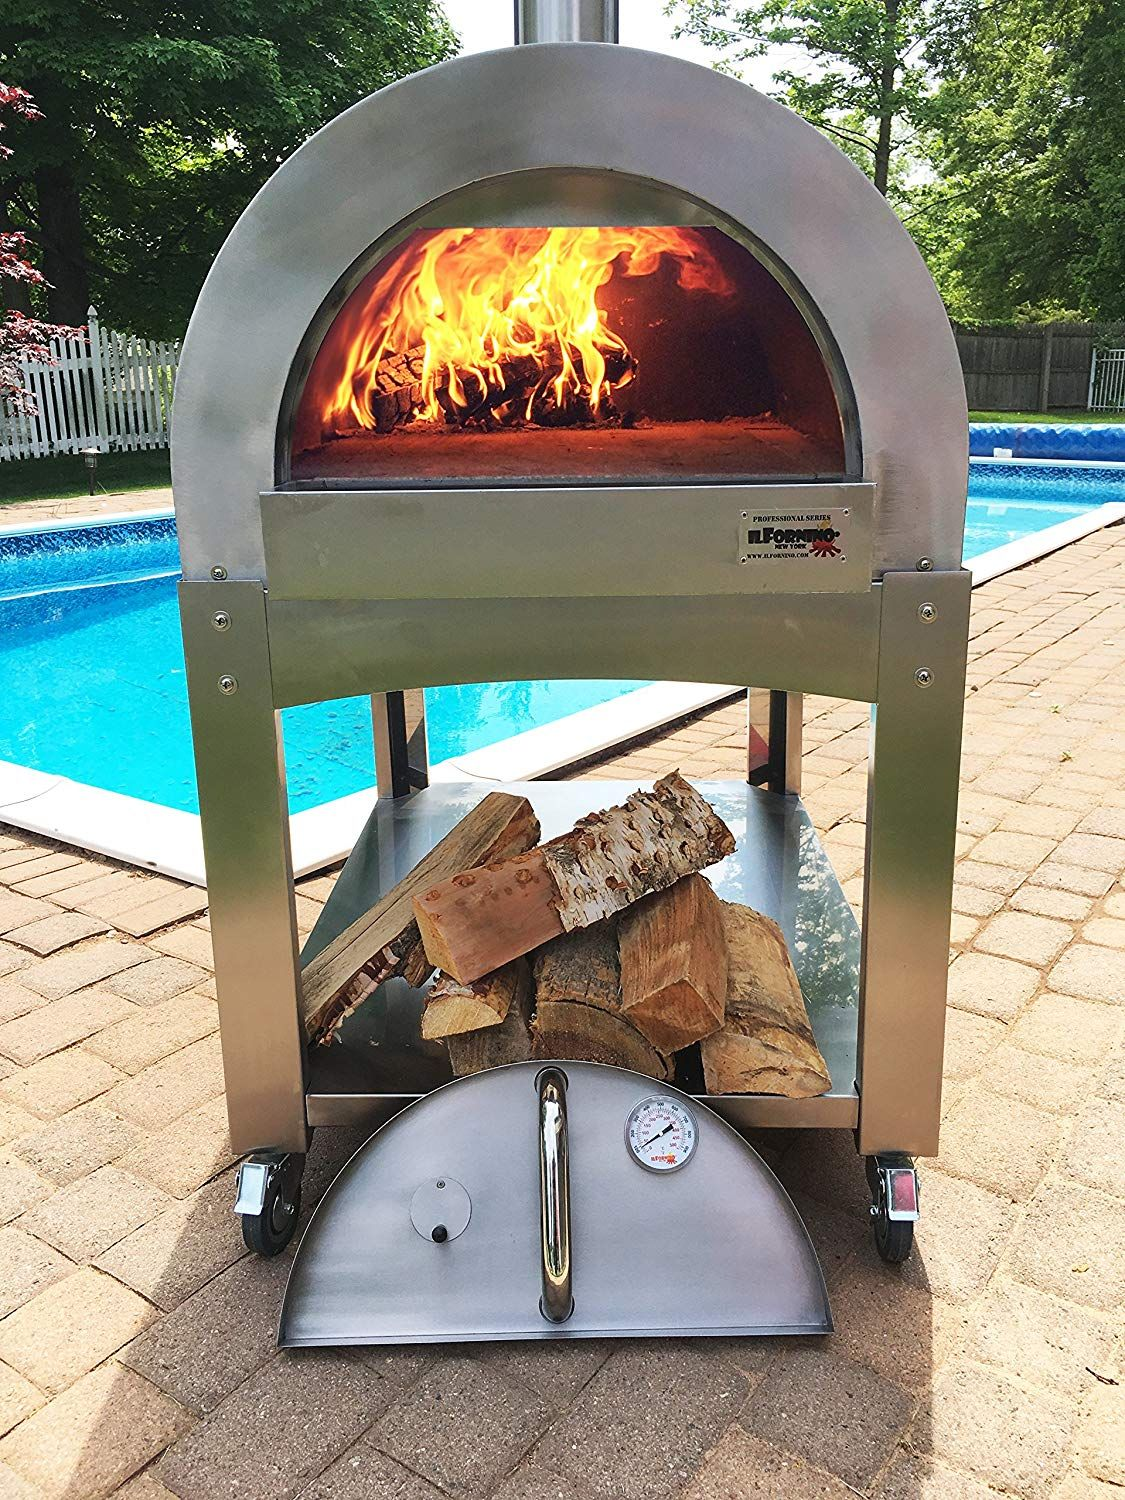 Fine Portable Outdoor Pizza Oven Pictures Good 24 On Small Home Decor Inspiration With